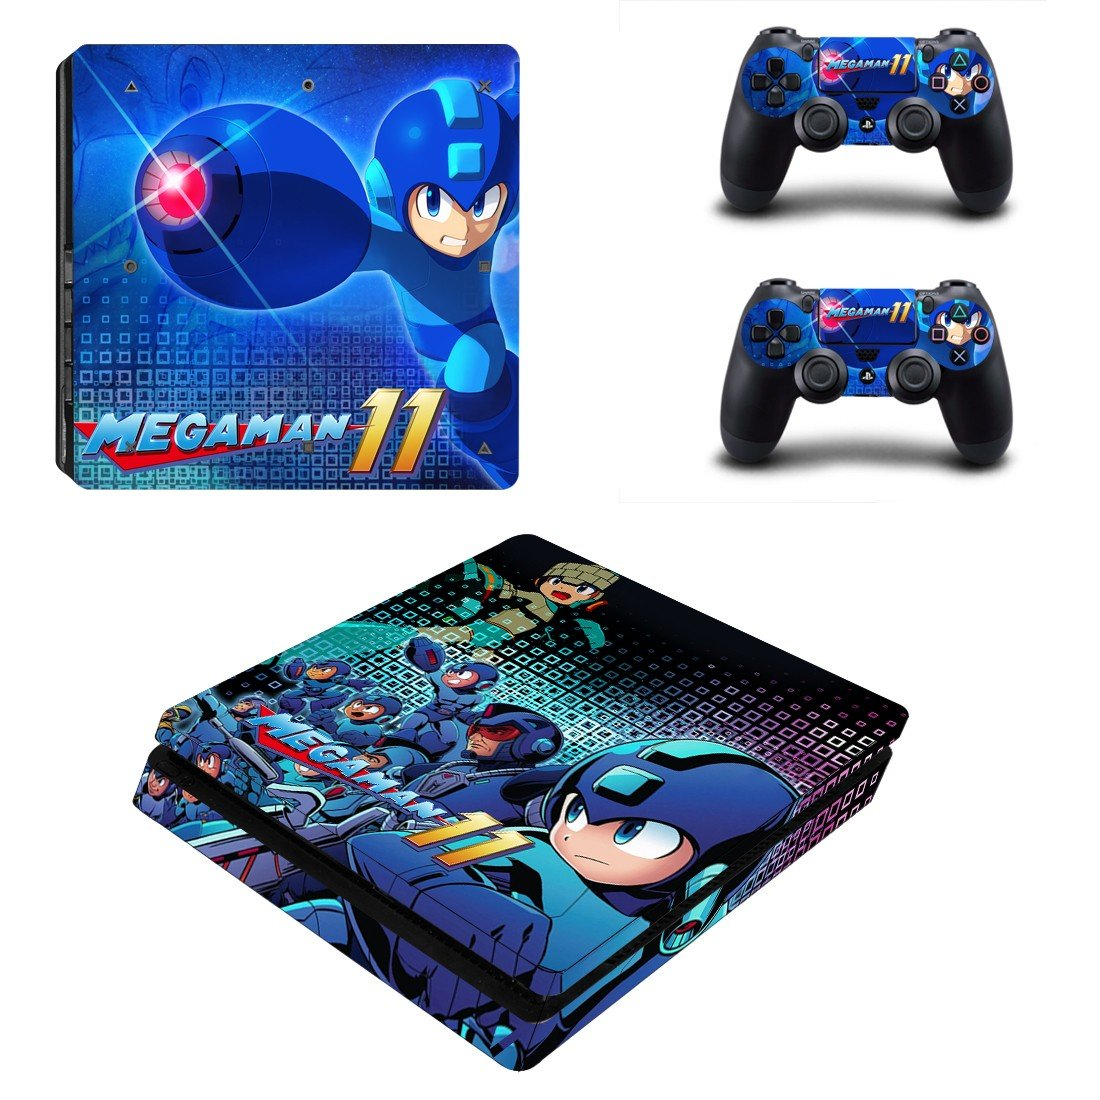 Mega Man 11 decal skin sticker for PS4 Slim console and controllers